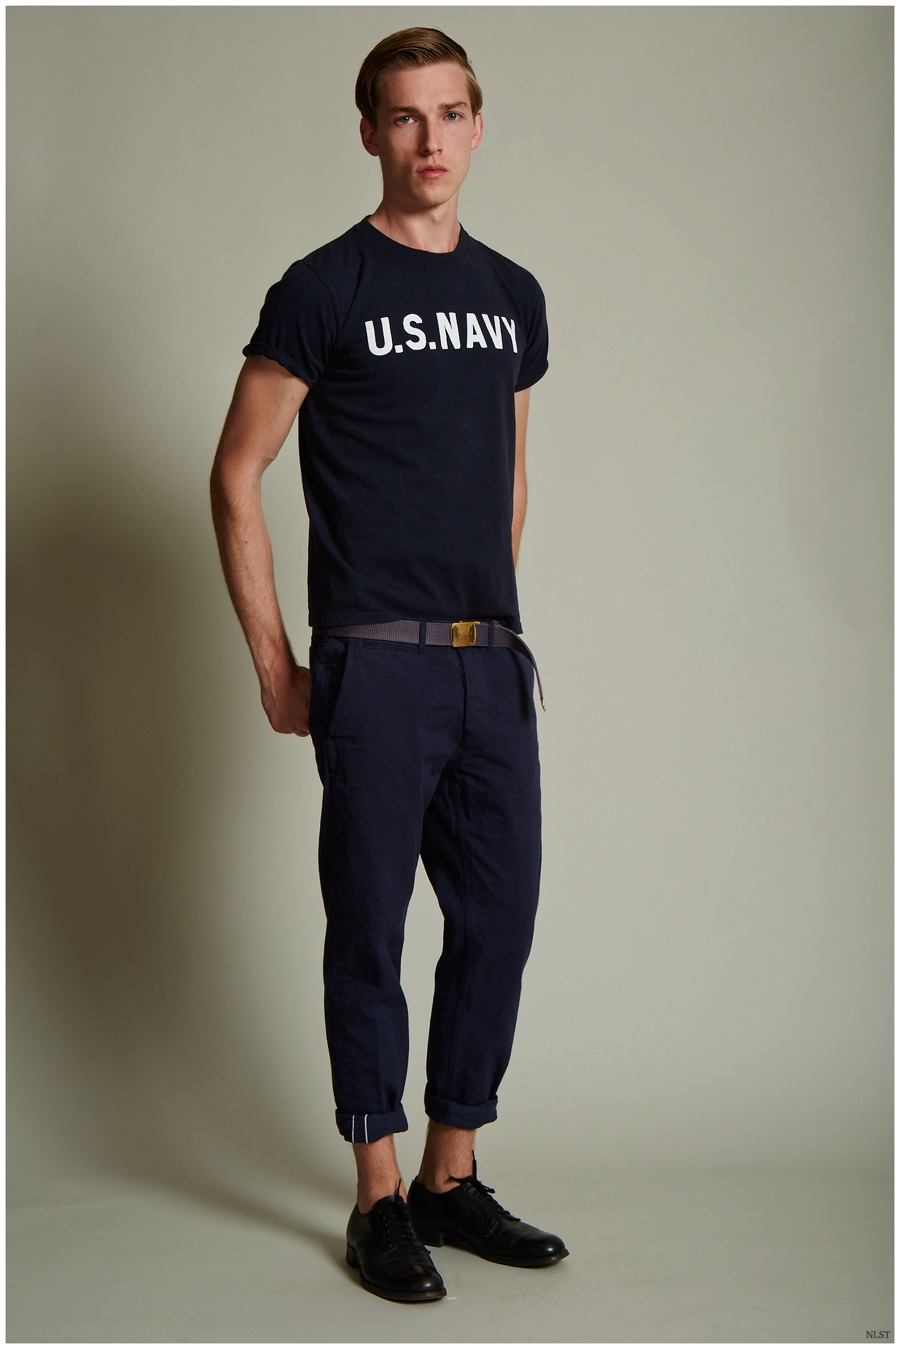 NLST Embraces Navy Inspired Styles for Spring 2015 Collection